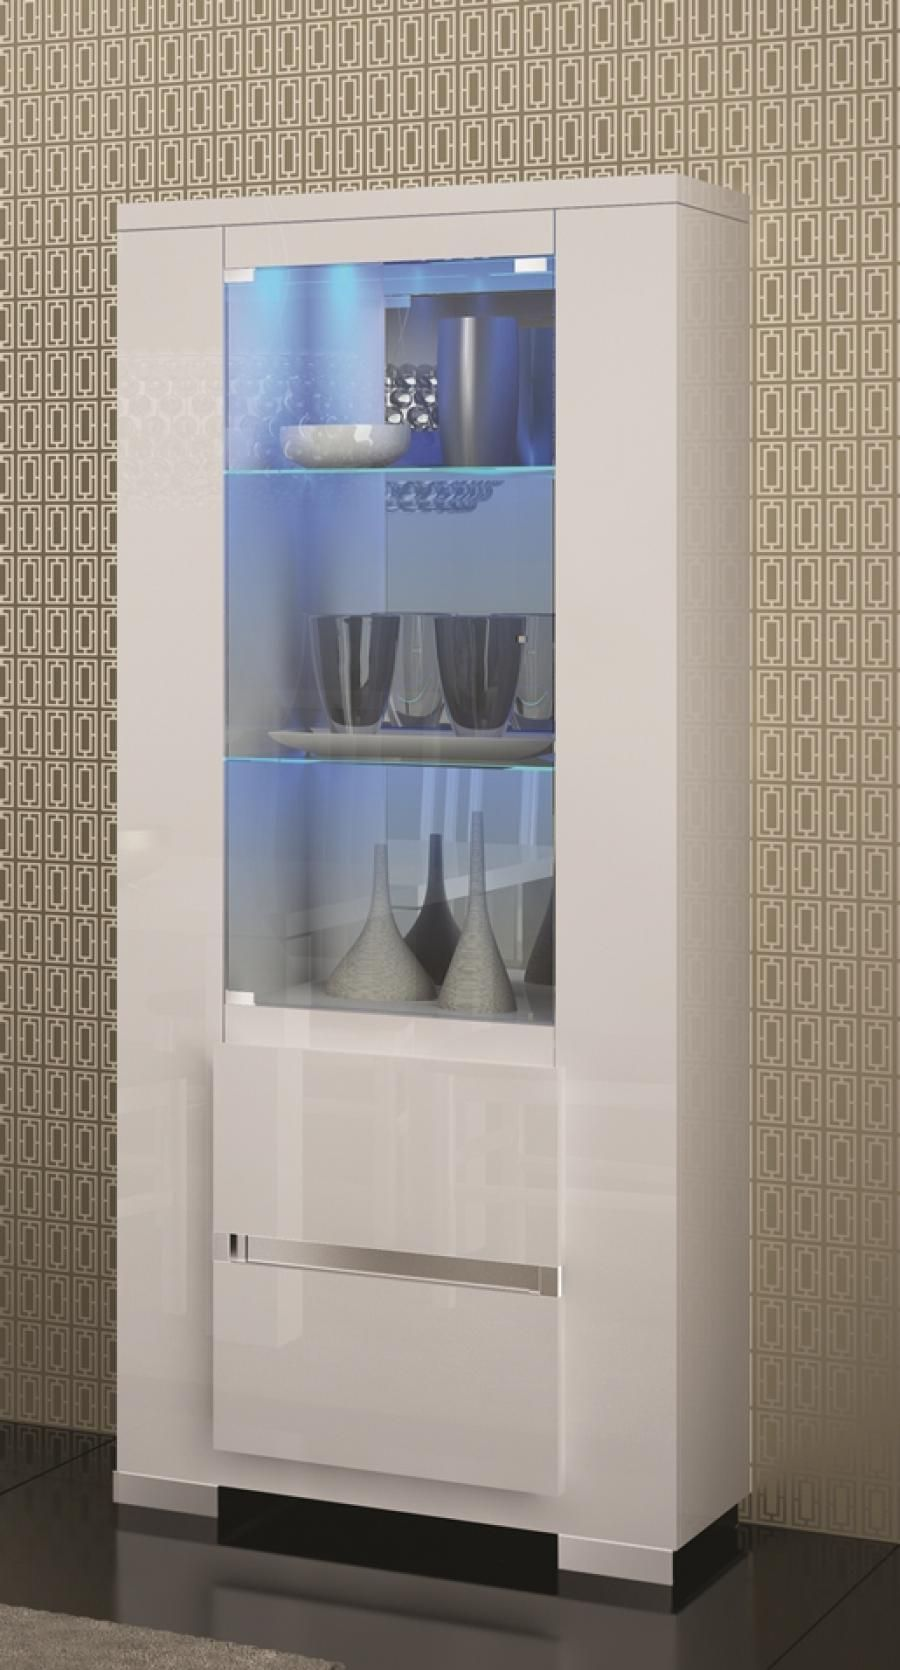 Elegance Display Unit In White Or Black High Gloss With Opt LED Lighting CabinetsLighting ProductsLiving Room FurnitureDining